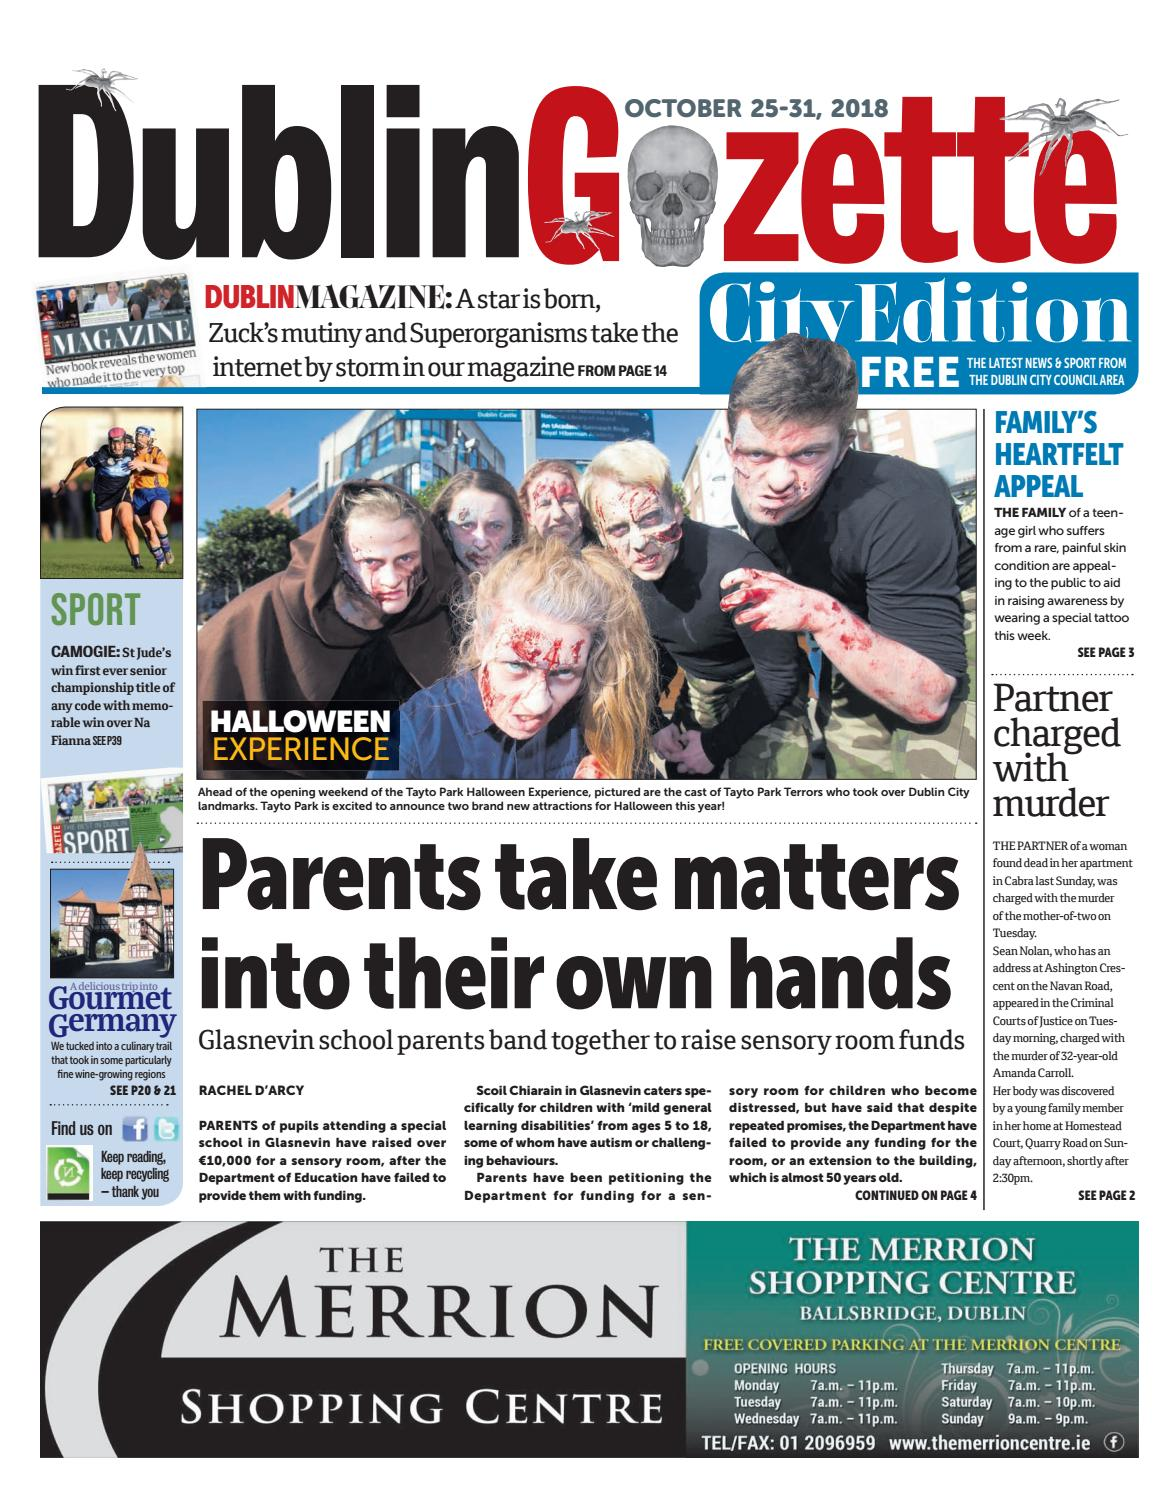 Dublin Gazette: City Edition by Dublin Gazette - issuu